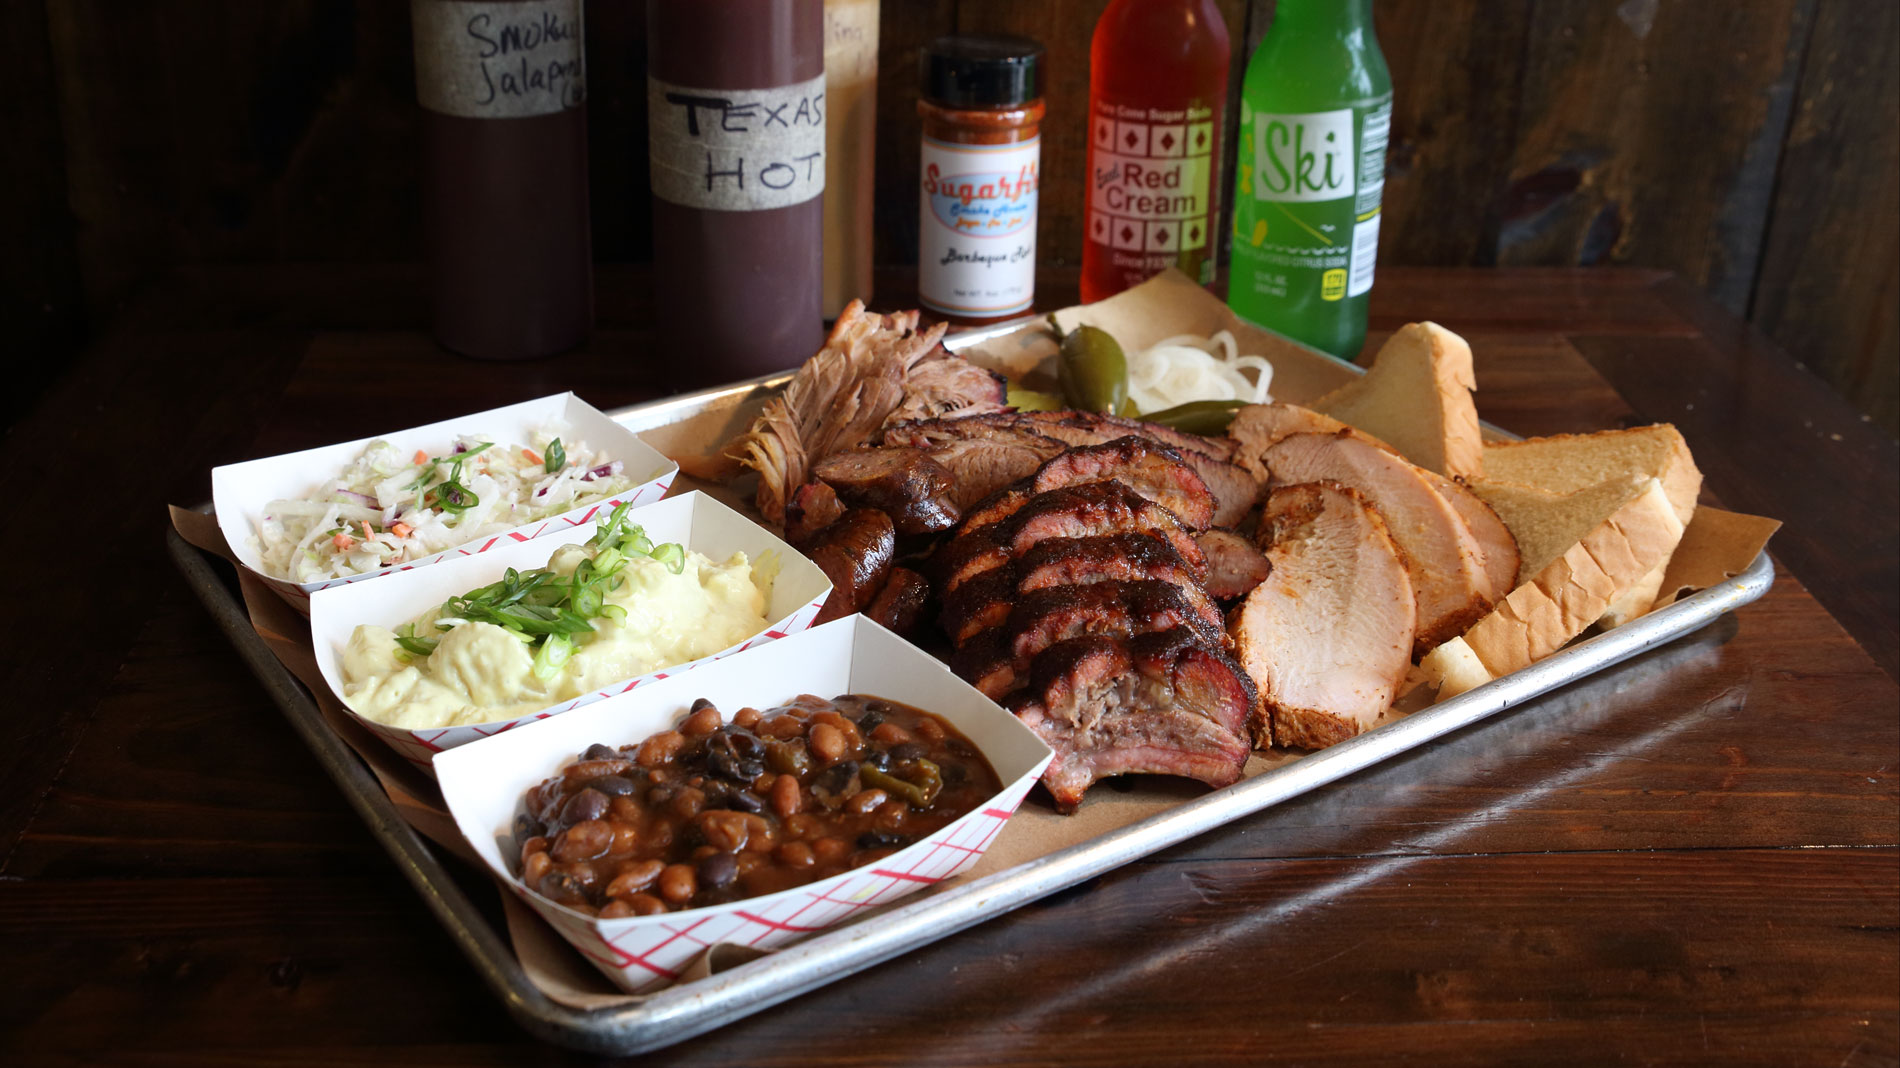 a tray of barbecue and sides